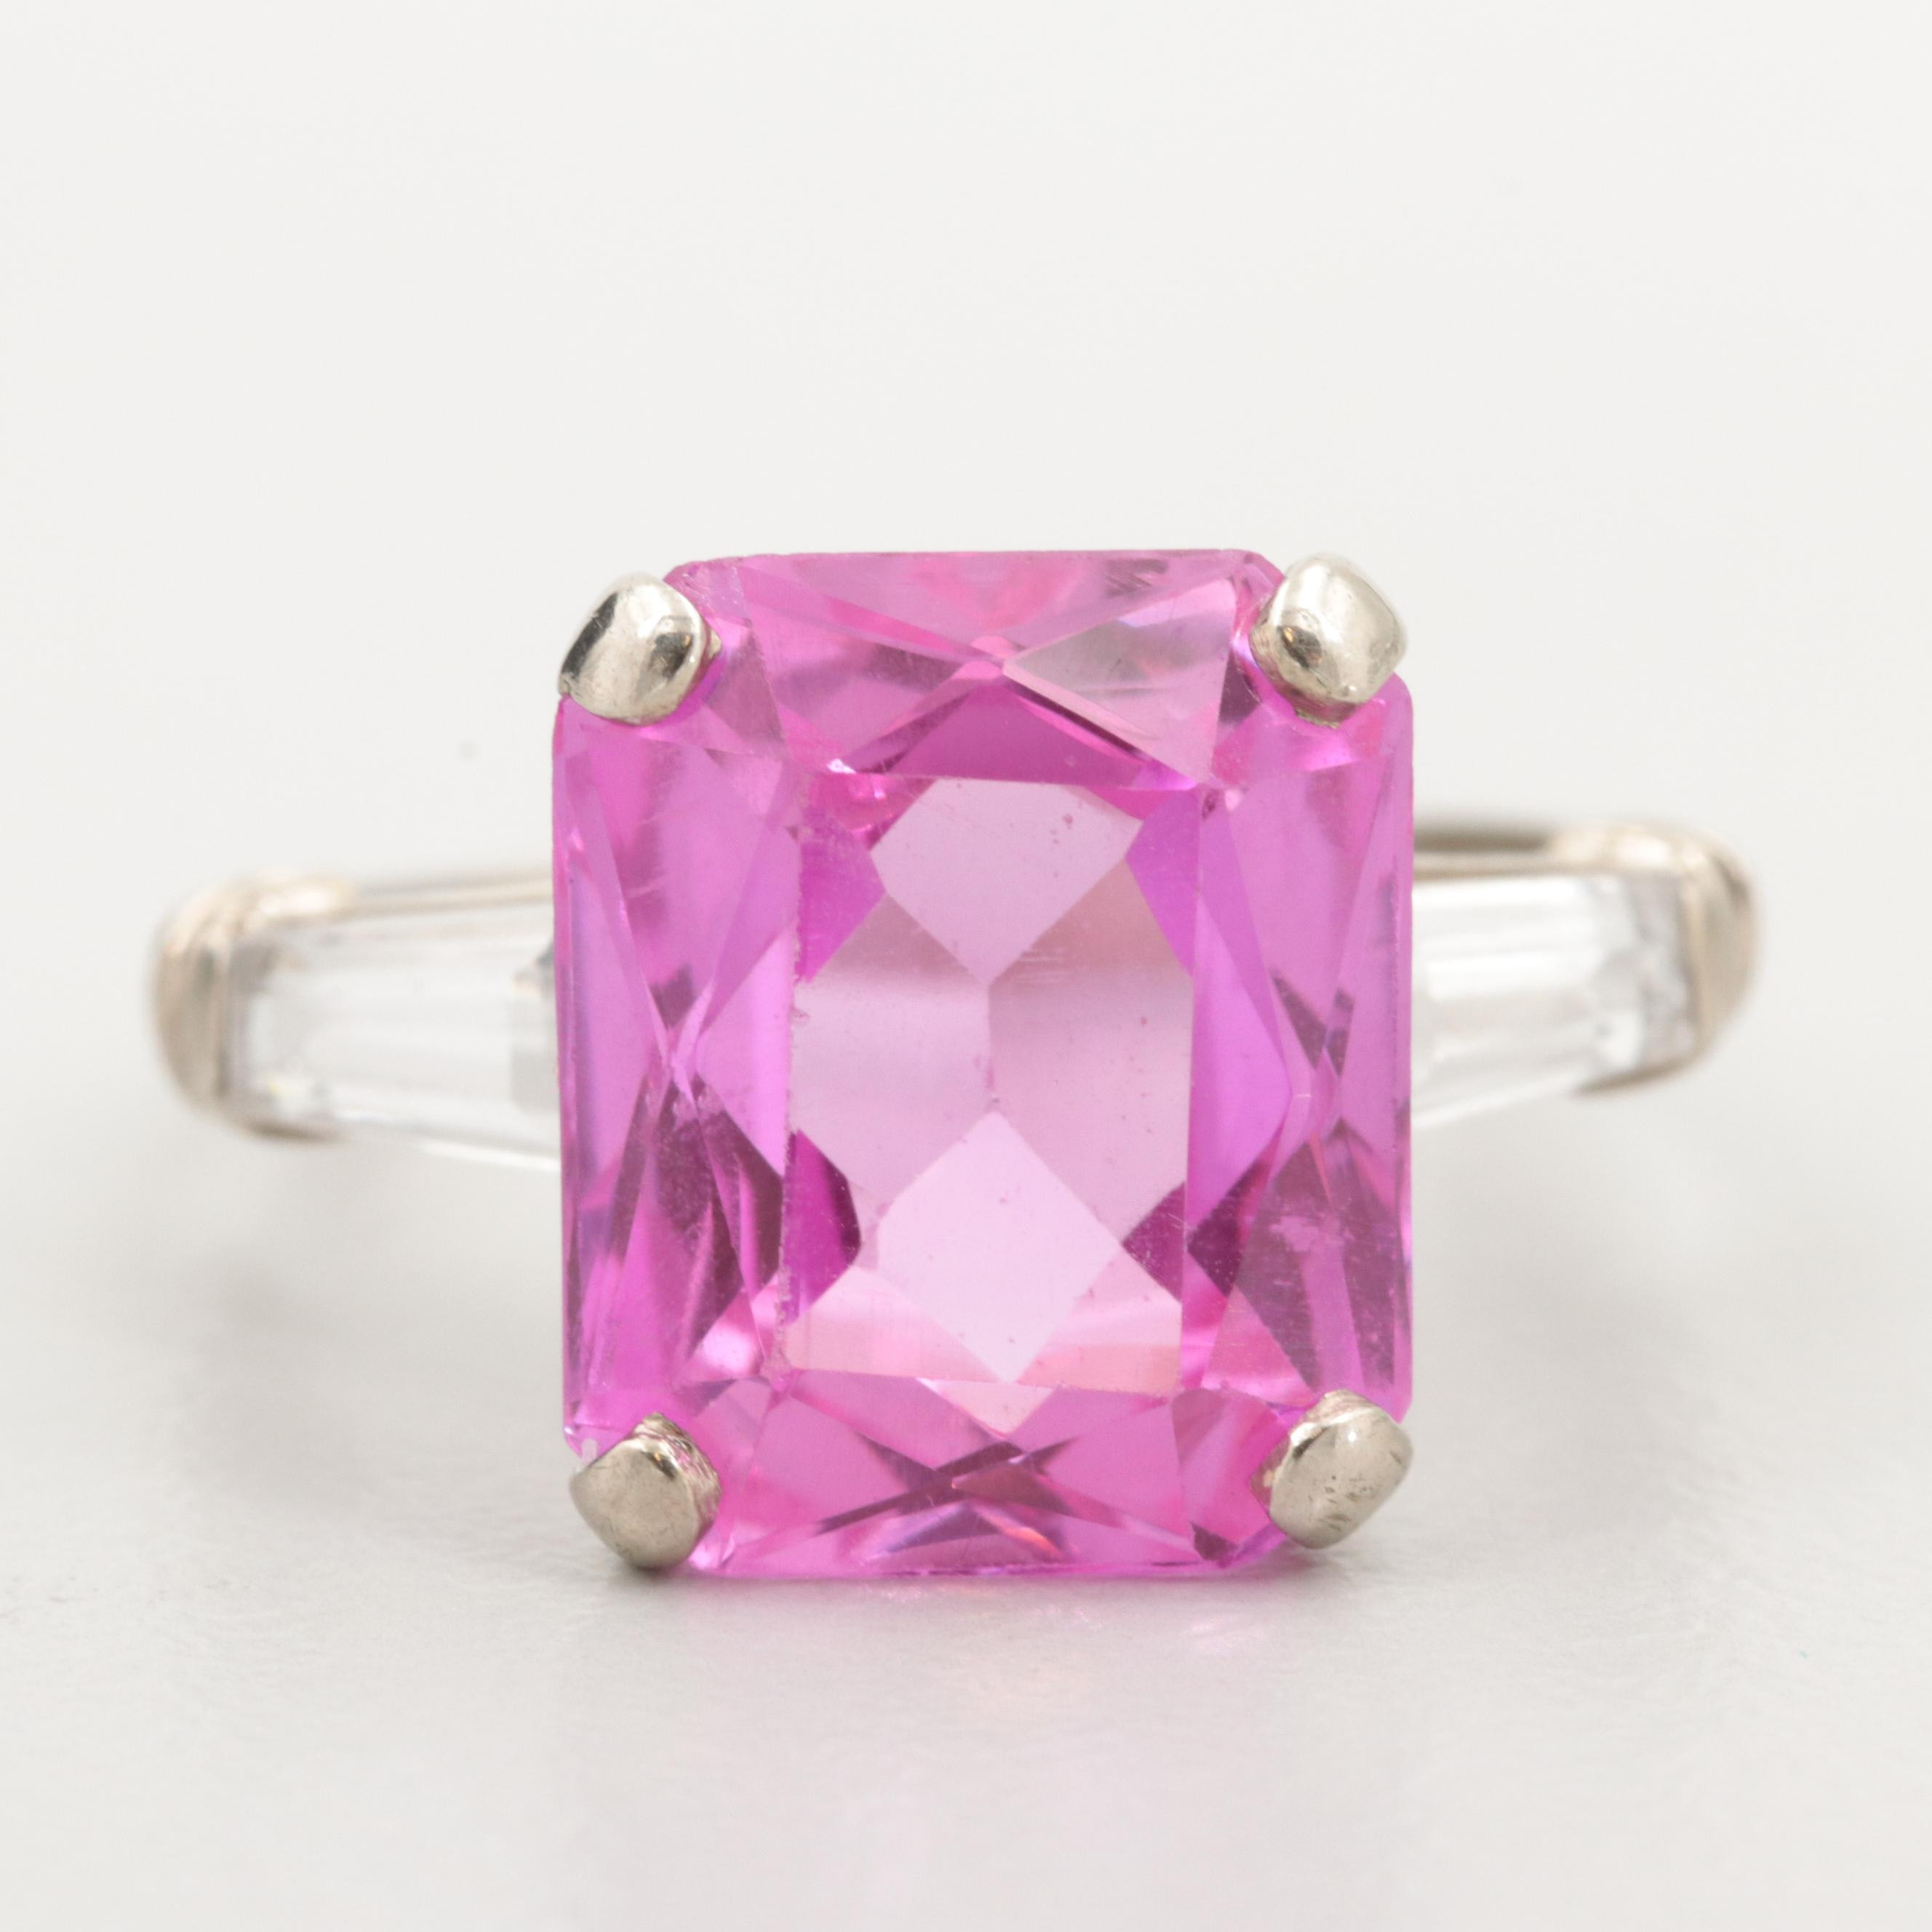 10K White Gold Synthetic Pink and Synthetic White Sapphire Ring